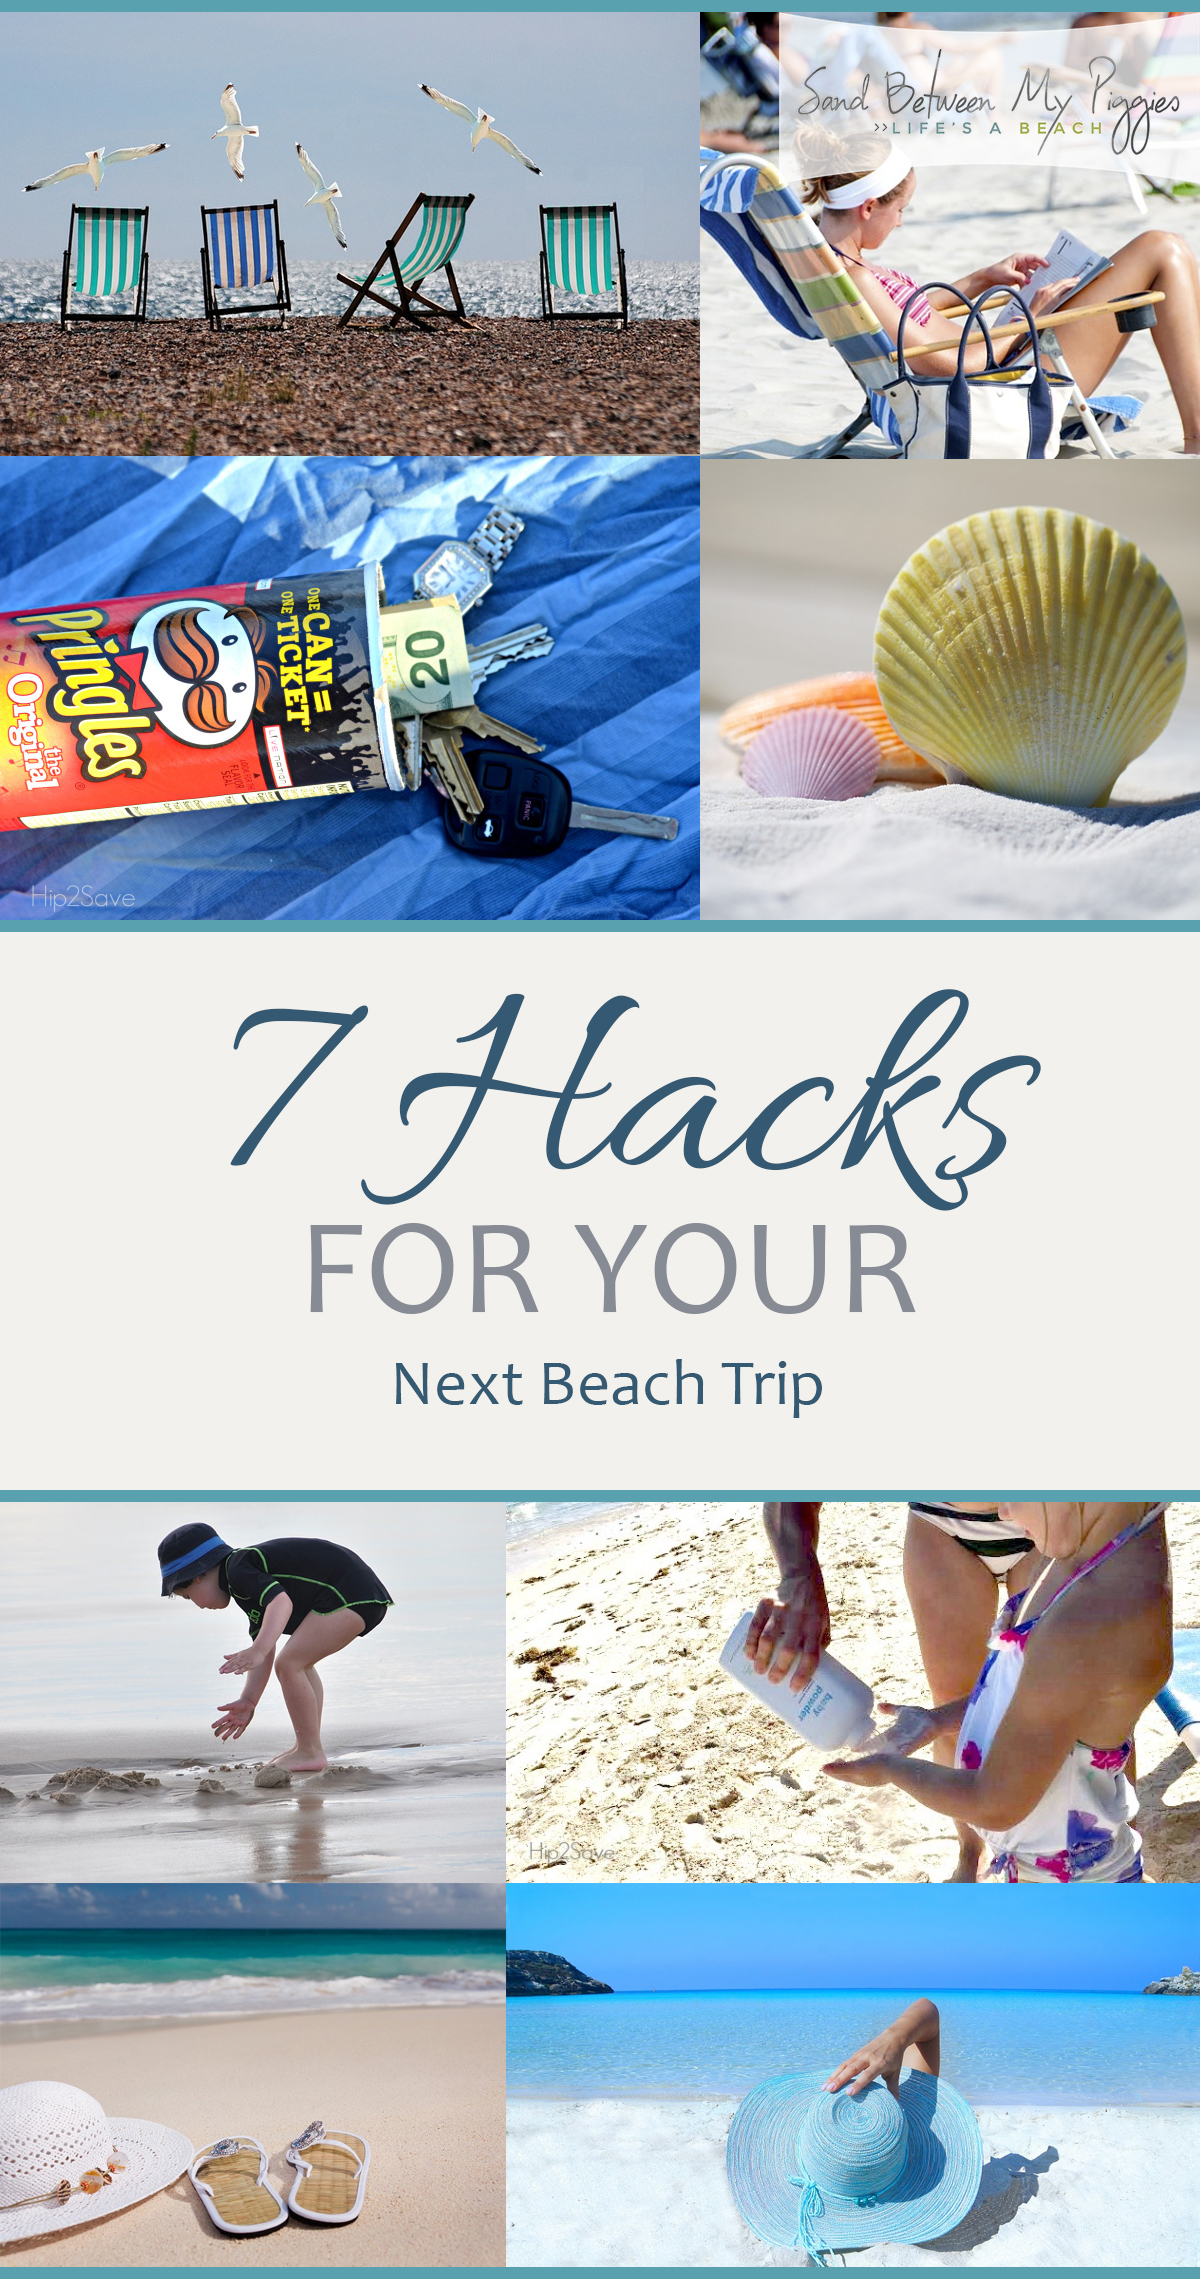 Beach Trip, Beach Hacks, Hacks for the Beach, Beach Vacation, Beach Vacation Tips and Tricks, Vacation Tips for the Beach, Cheap Beach Vacation, Popular